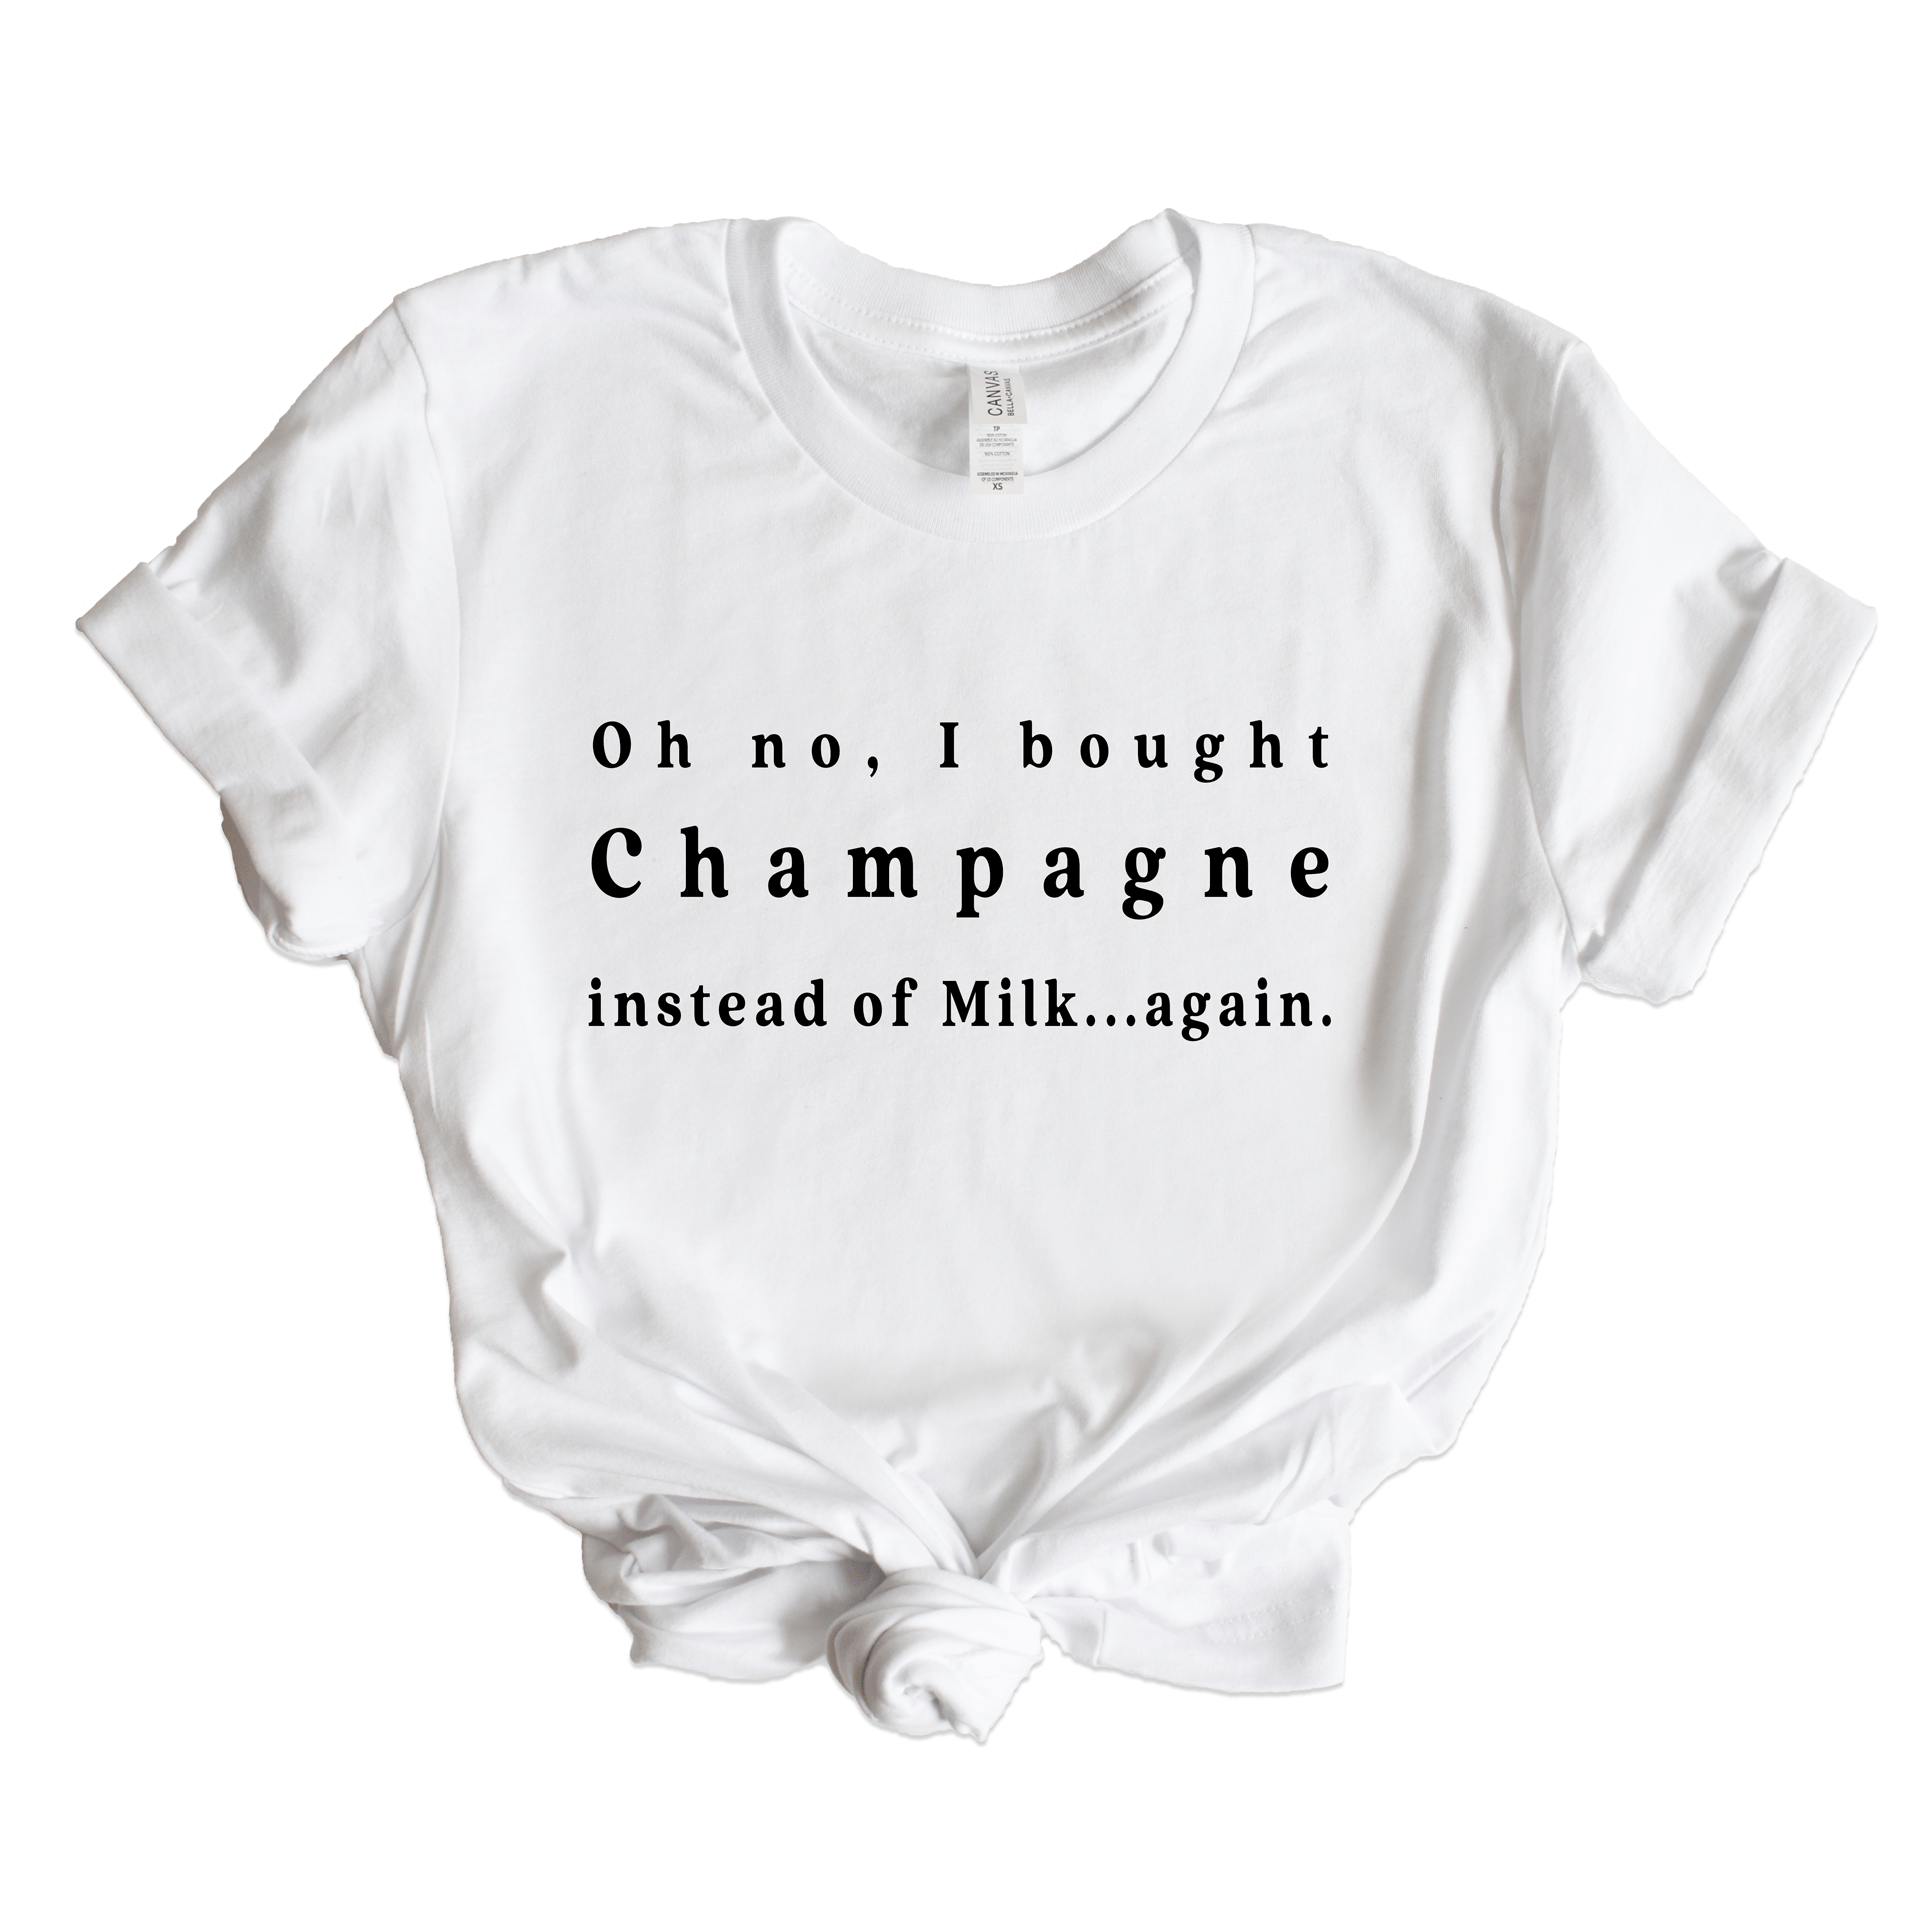 Women's Champagne T-Shirt